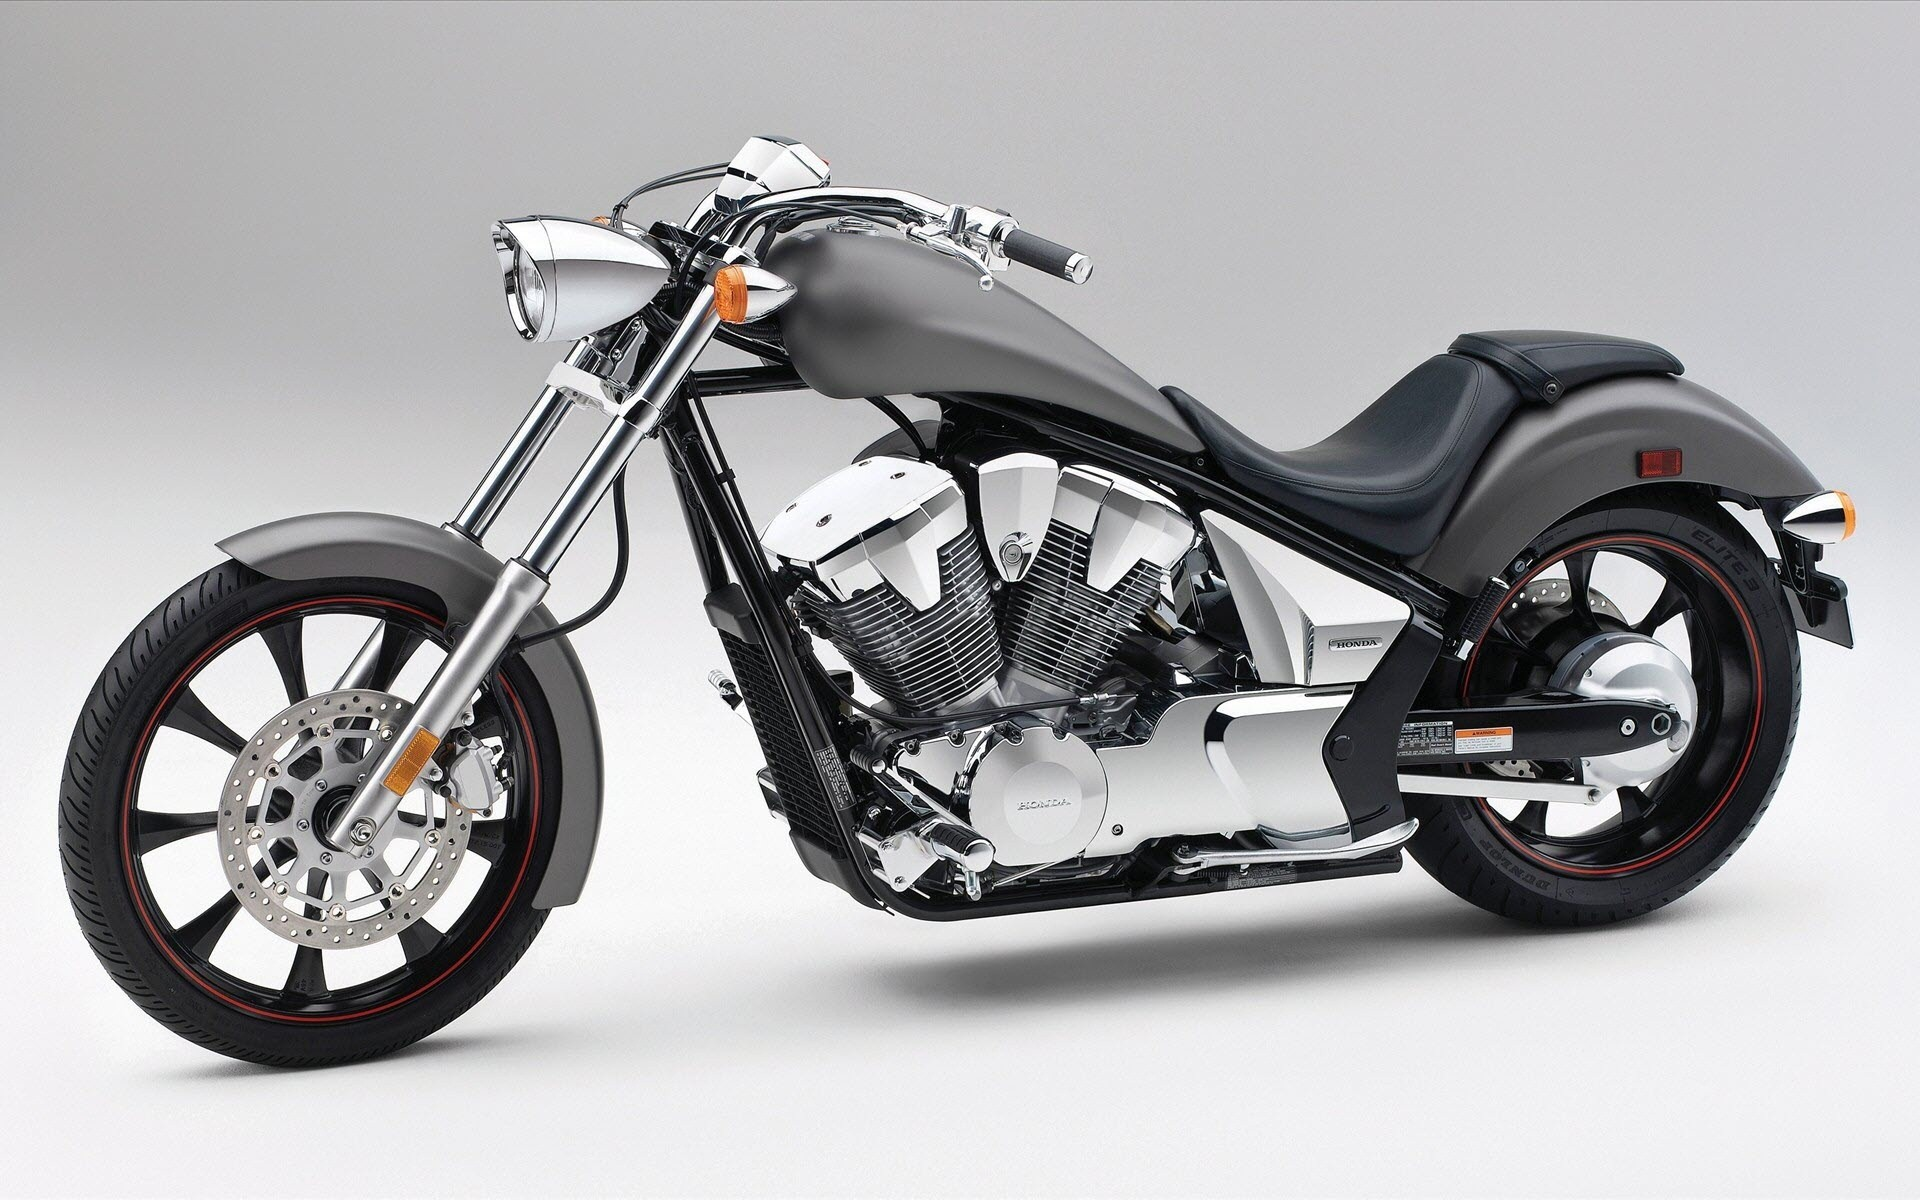 Honda Fury hd wallpapers